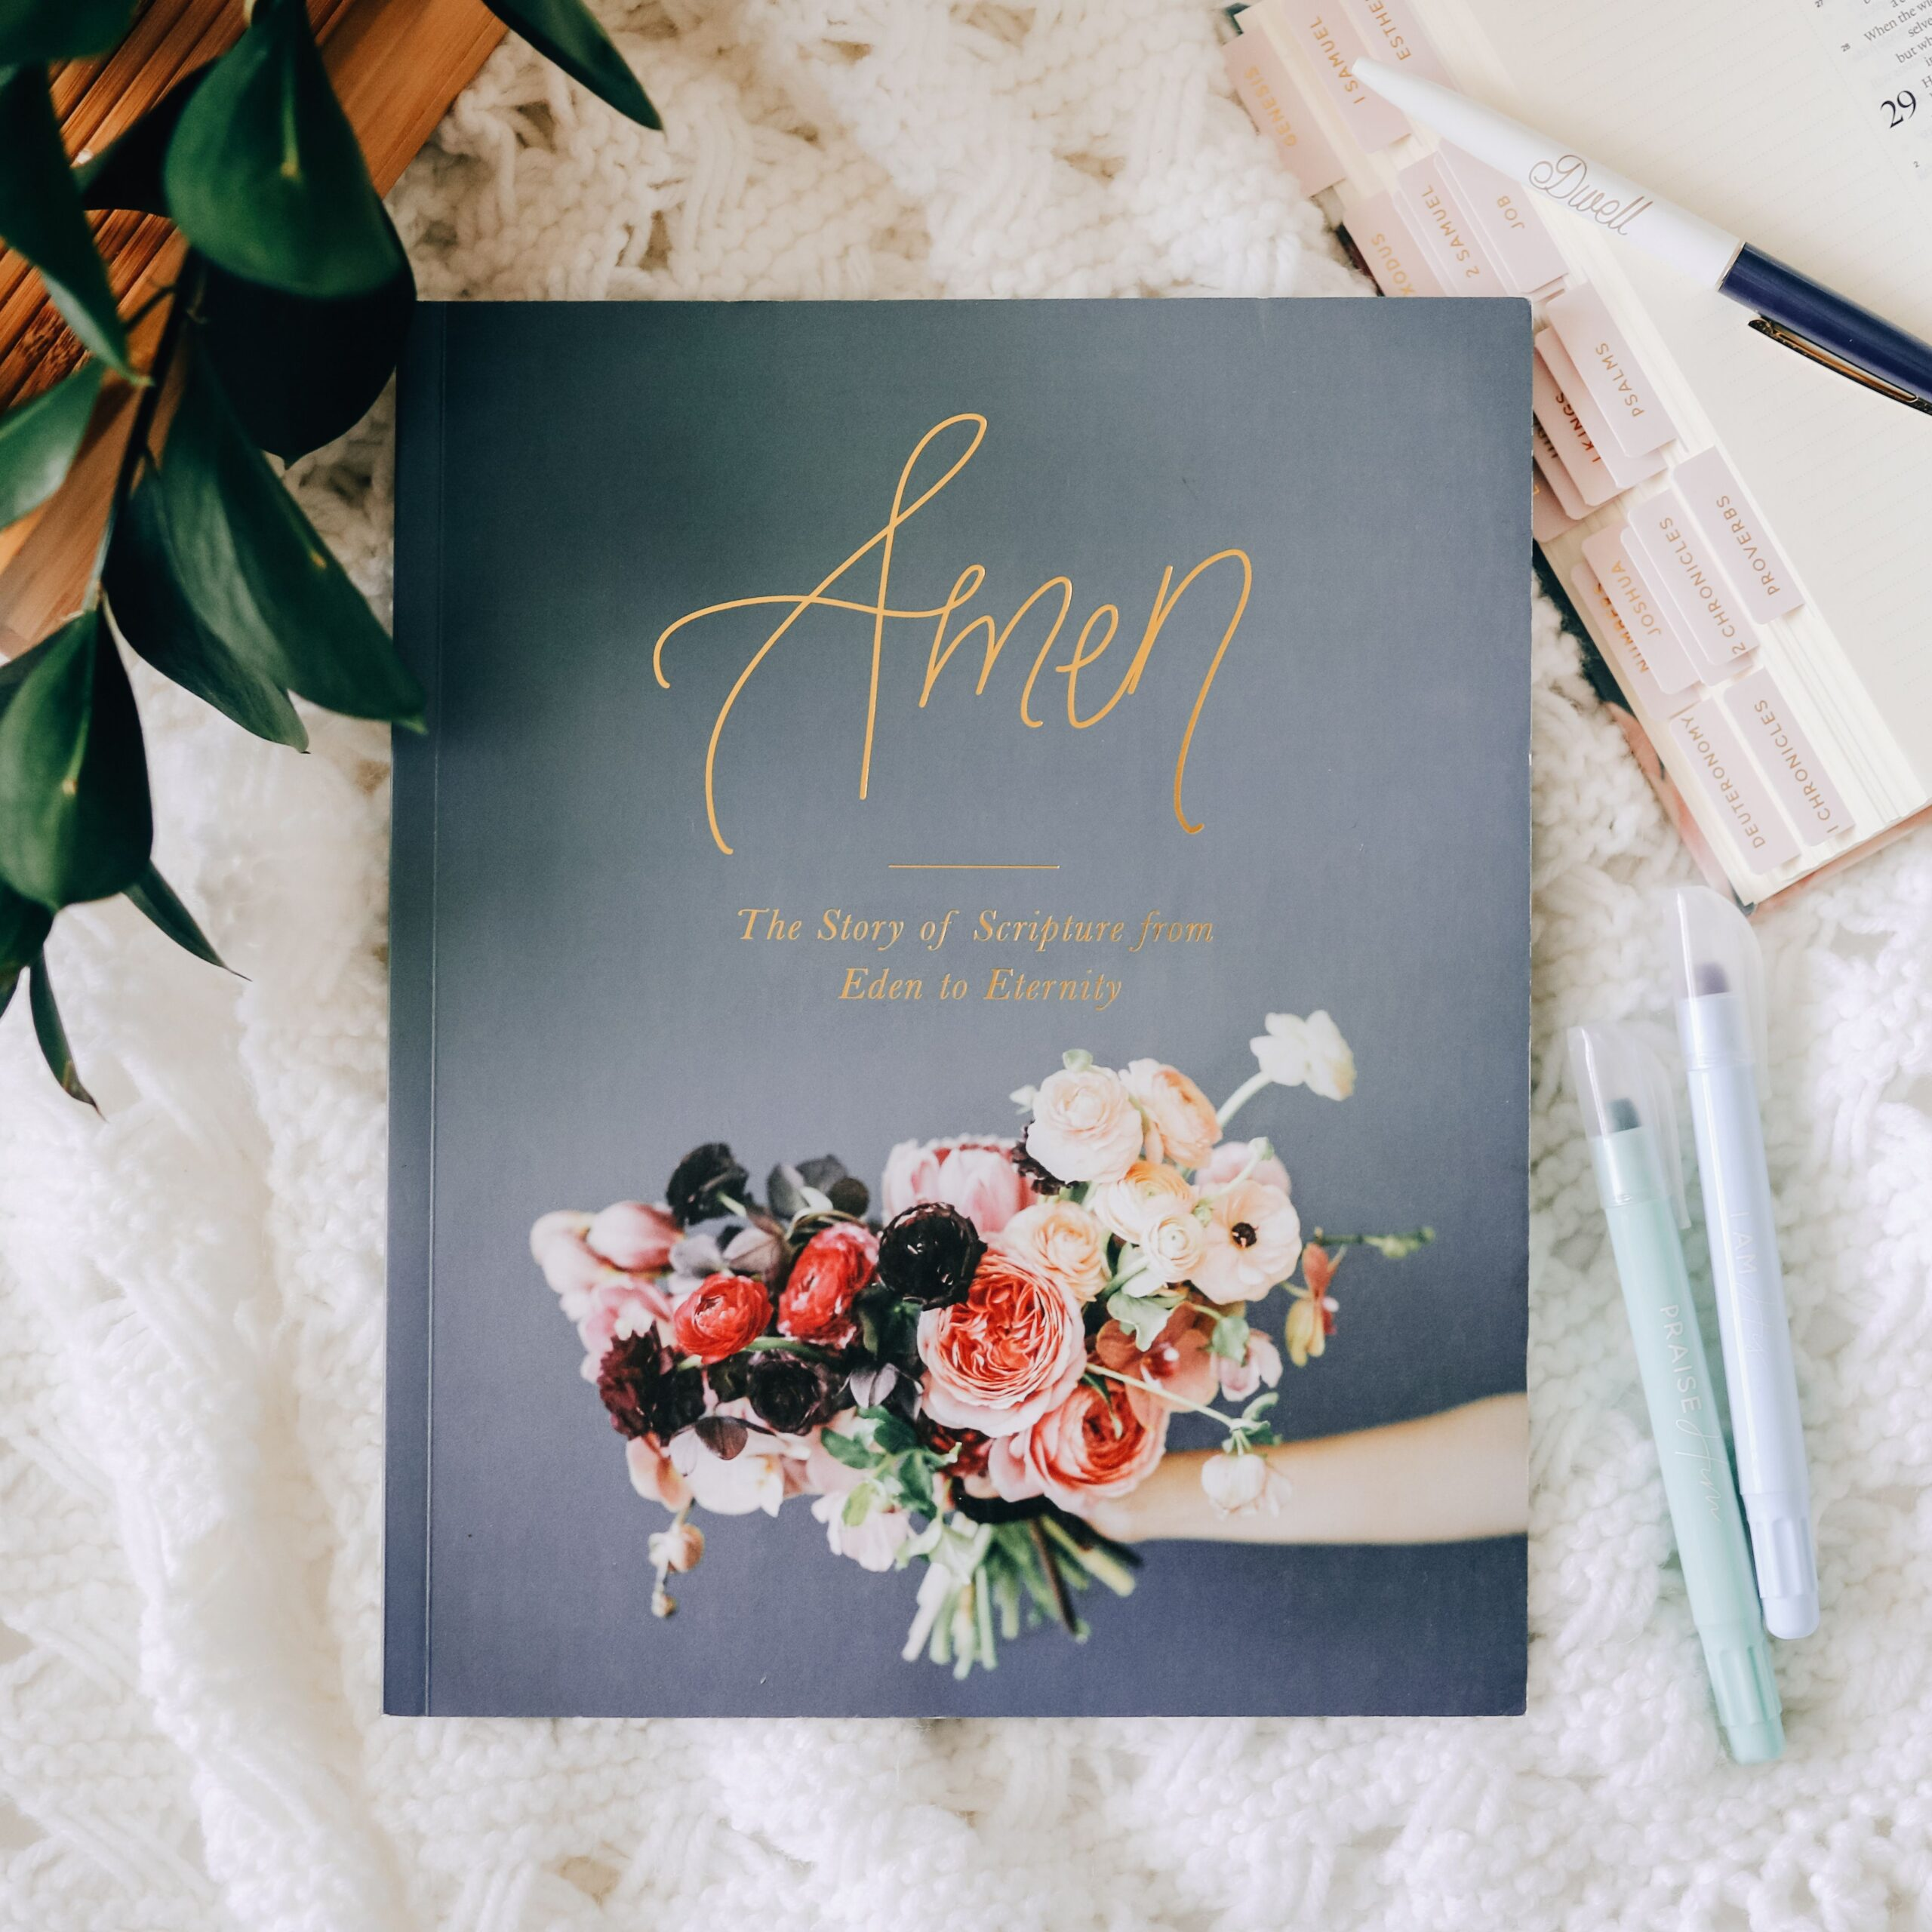 The Daily Grace Co. is passionate about equipping women to know and love God's Word. We pray that the Bible study tools found here will encourage you to run to the Lord and to His Word.